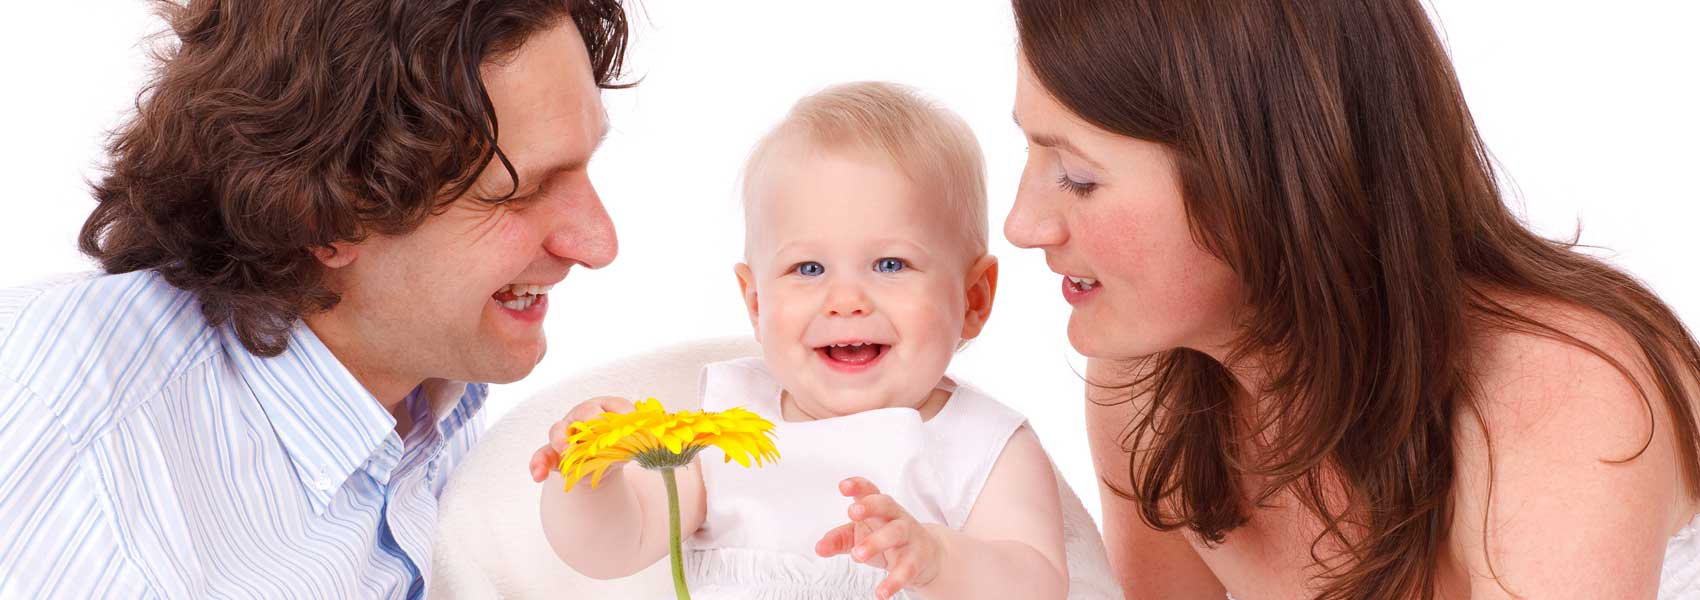 MGH Obstetrics & Gynecology - Marion, IN